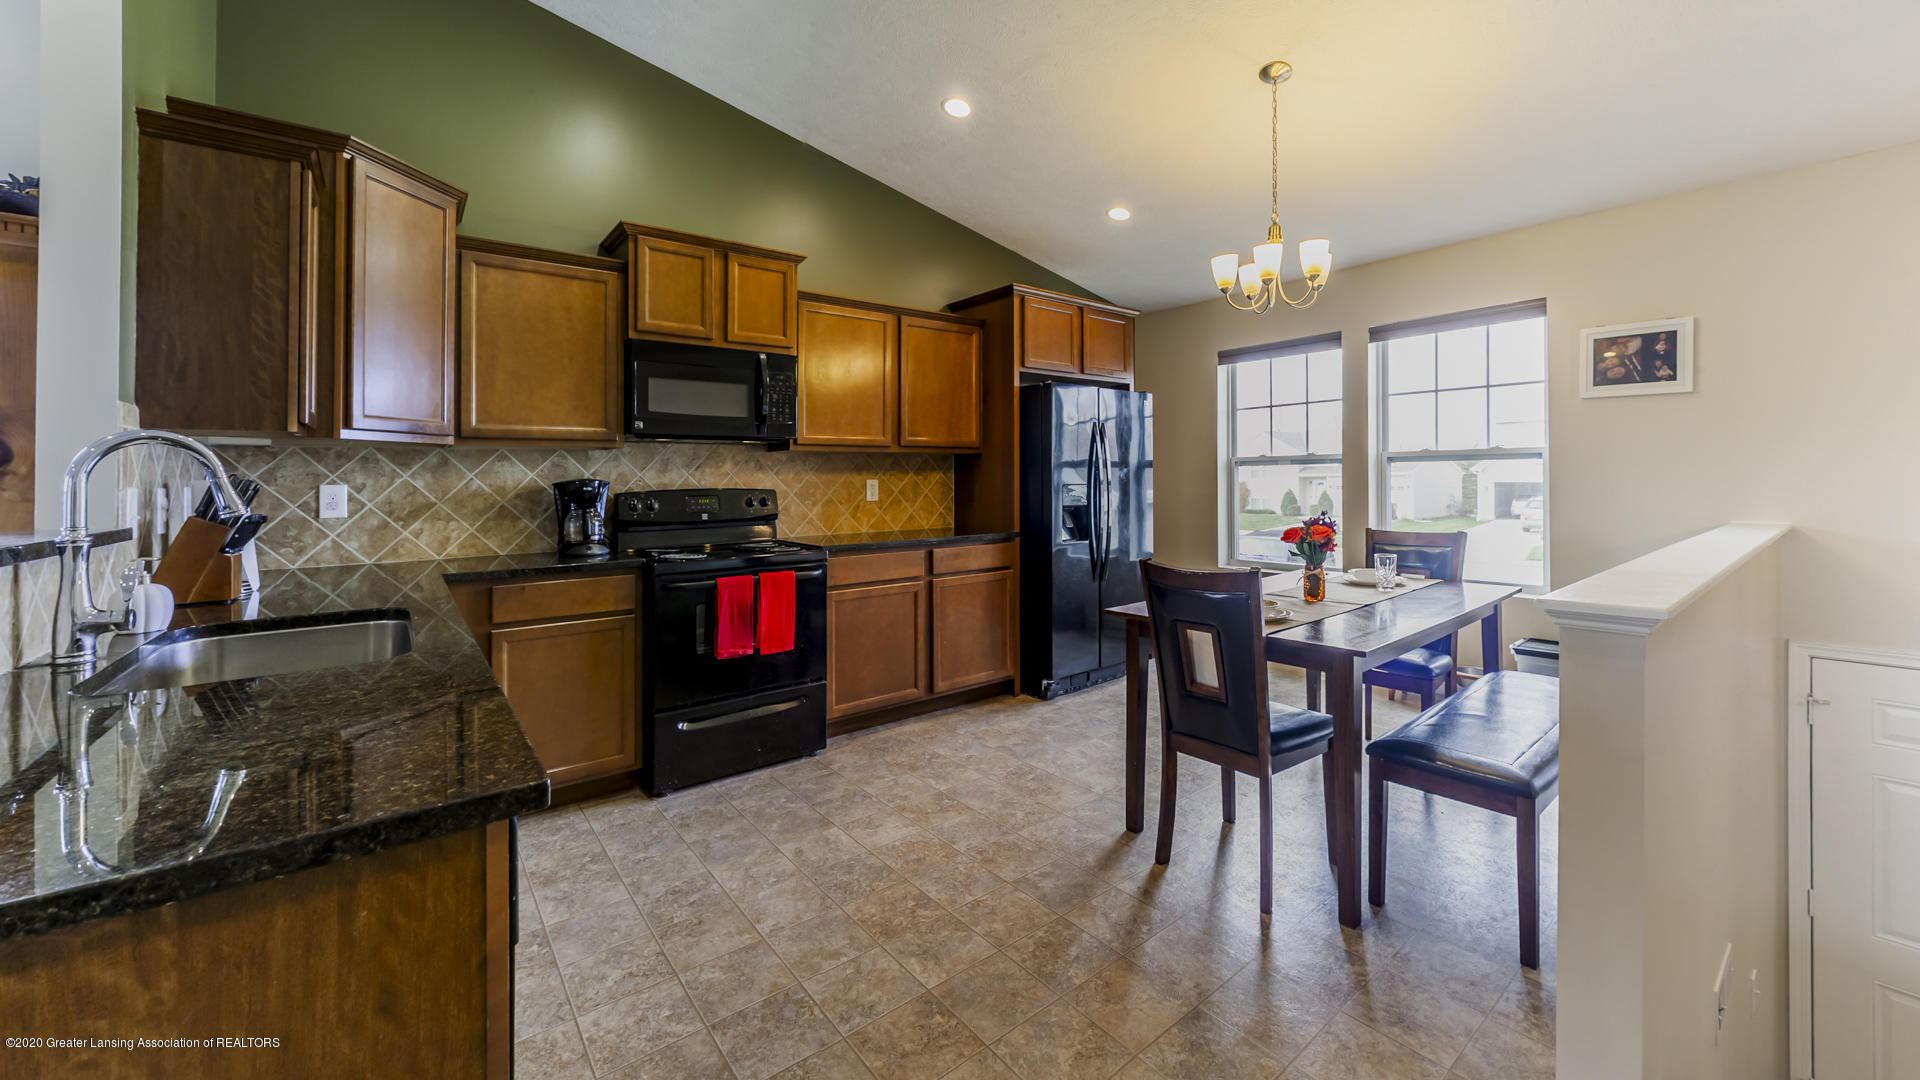 15845 Turnberry St - 15845Turnberry06 - 6